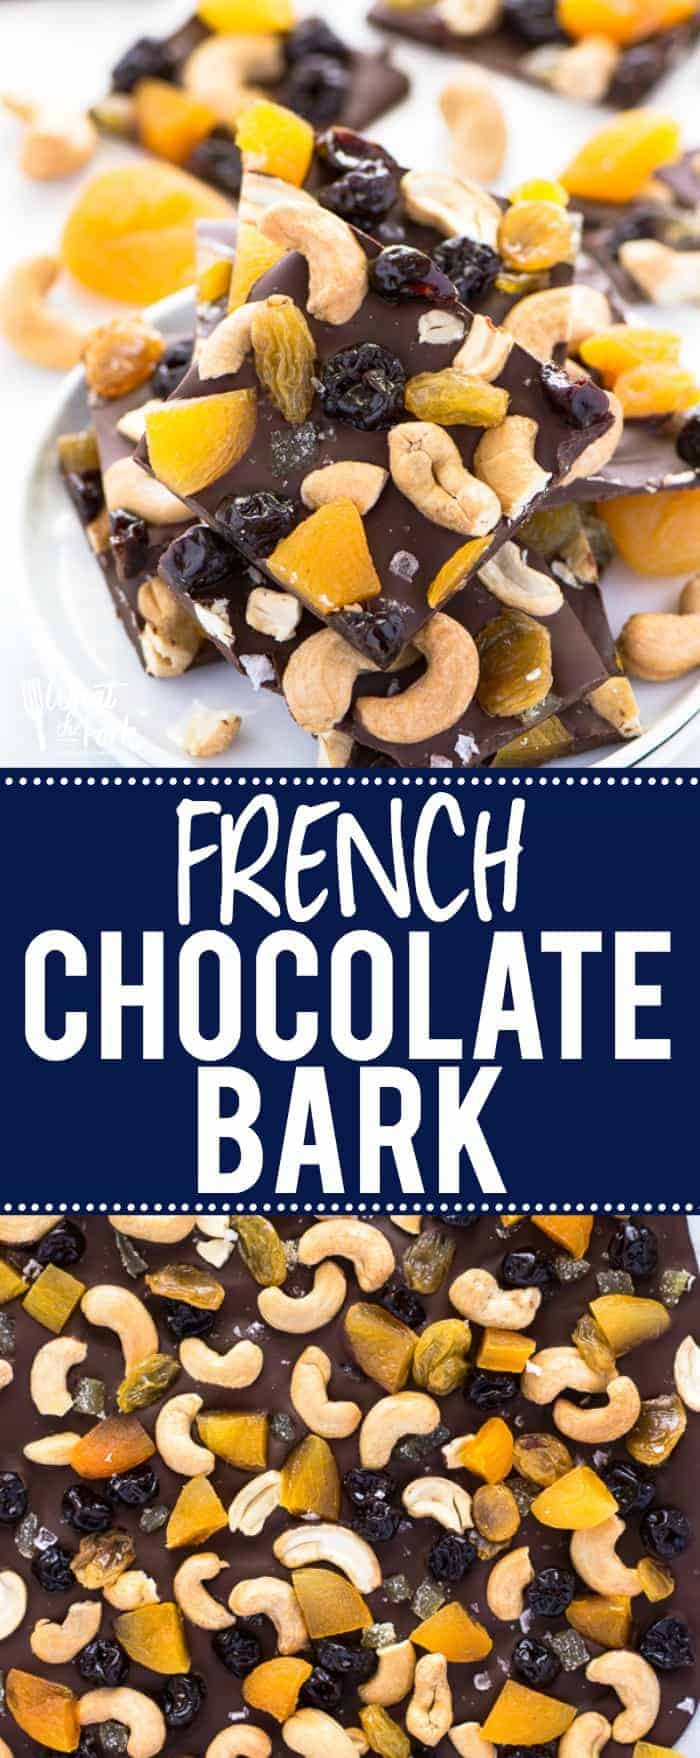 Ina Garten's French Chocolate Bark recipe - an easy to make no-bake dessert! It's also a homemade candy that doesn't require using a candy thermometer! Recipe via @whattheforkblog | whattheforkfoodblog.com | homemade bark | homemade candy | homemade gifts | how to make chocolate bark | easy dessert recipes | chocolate recipes